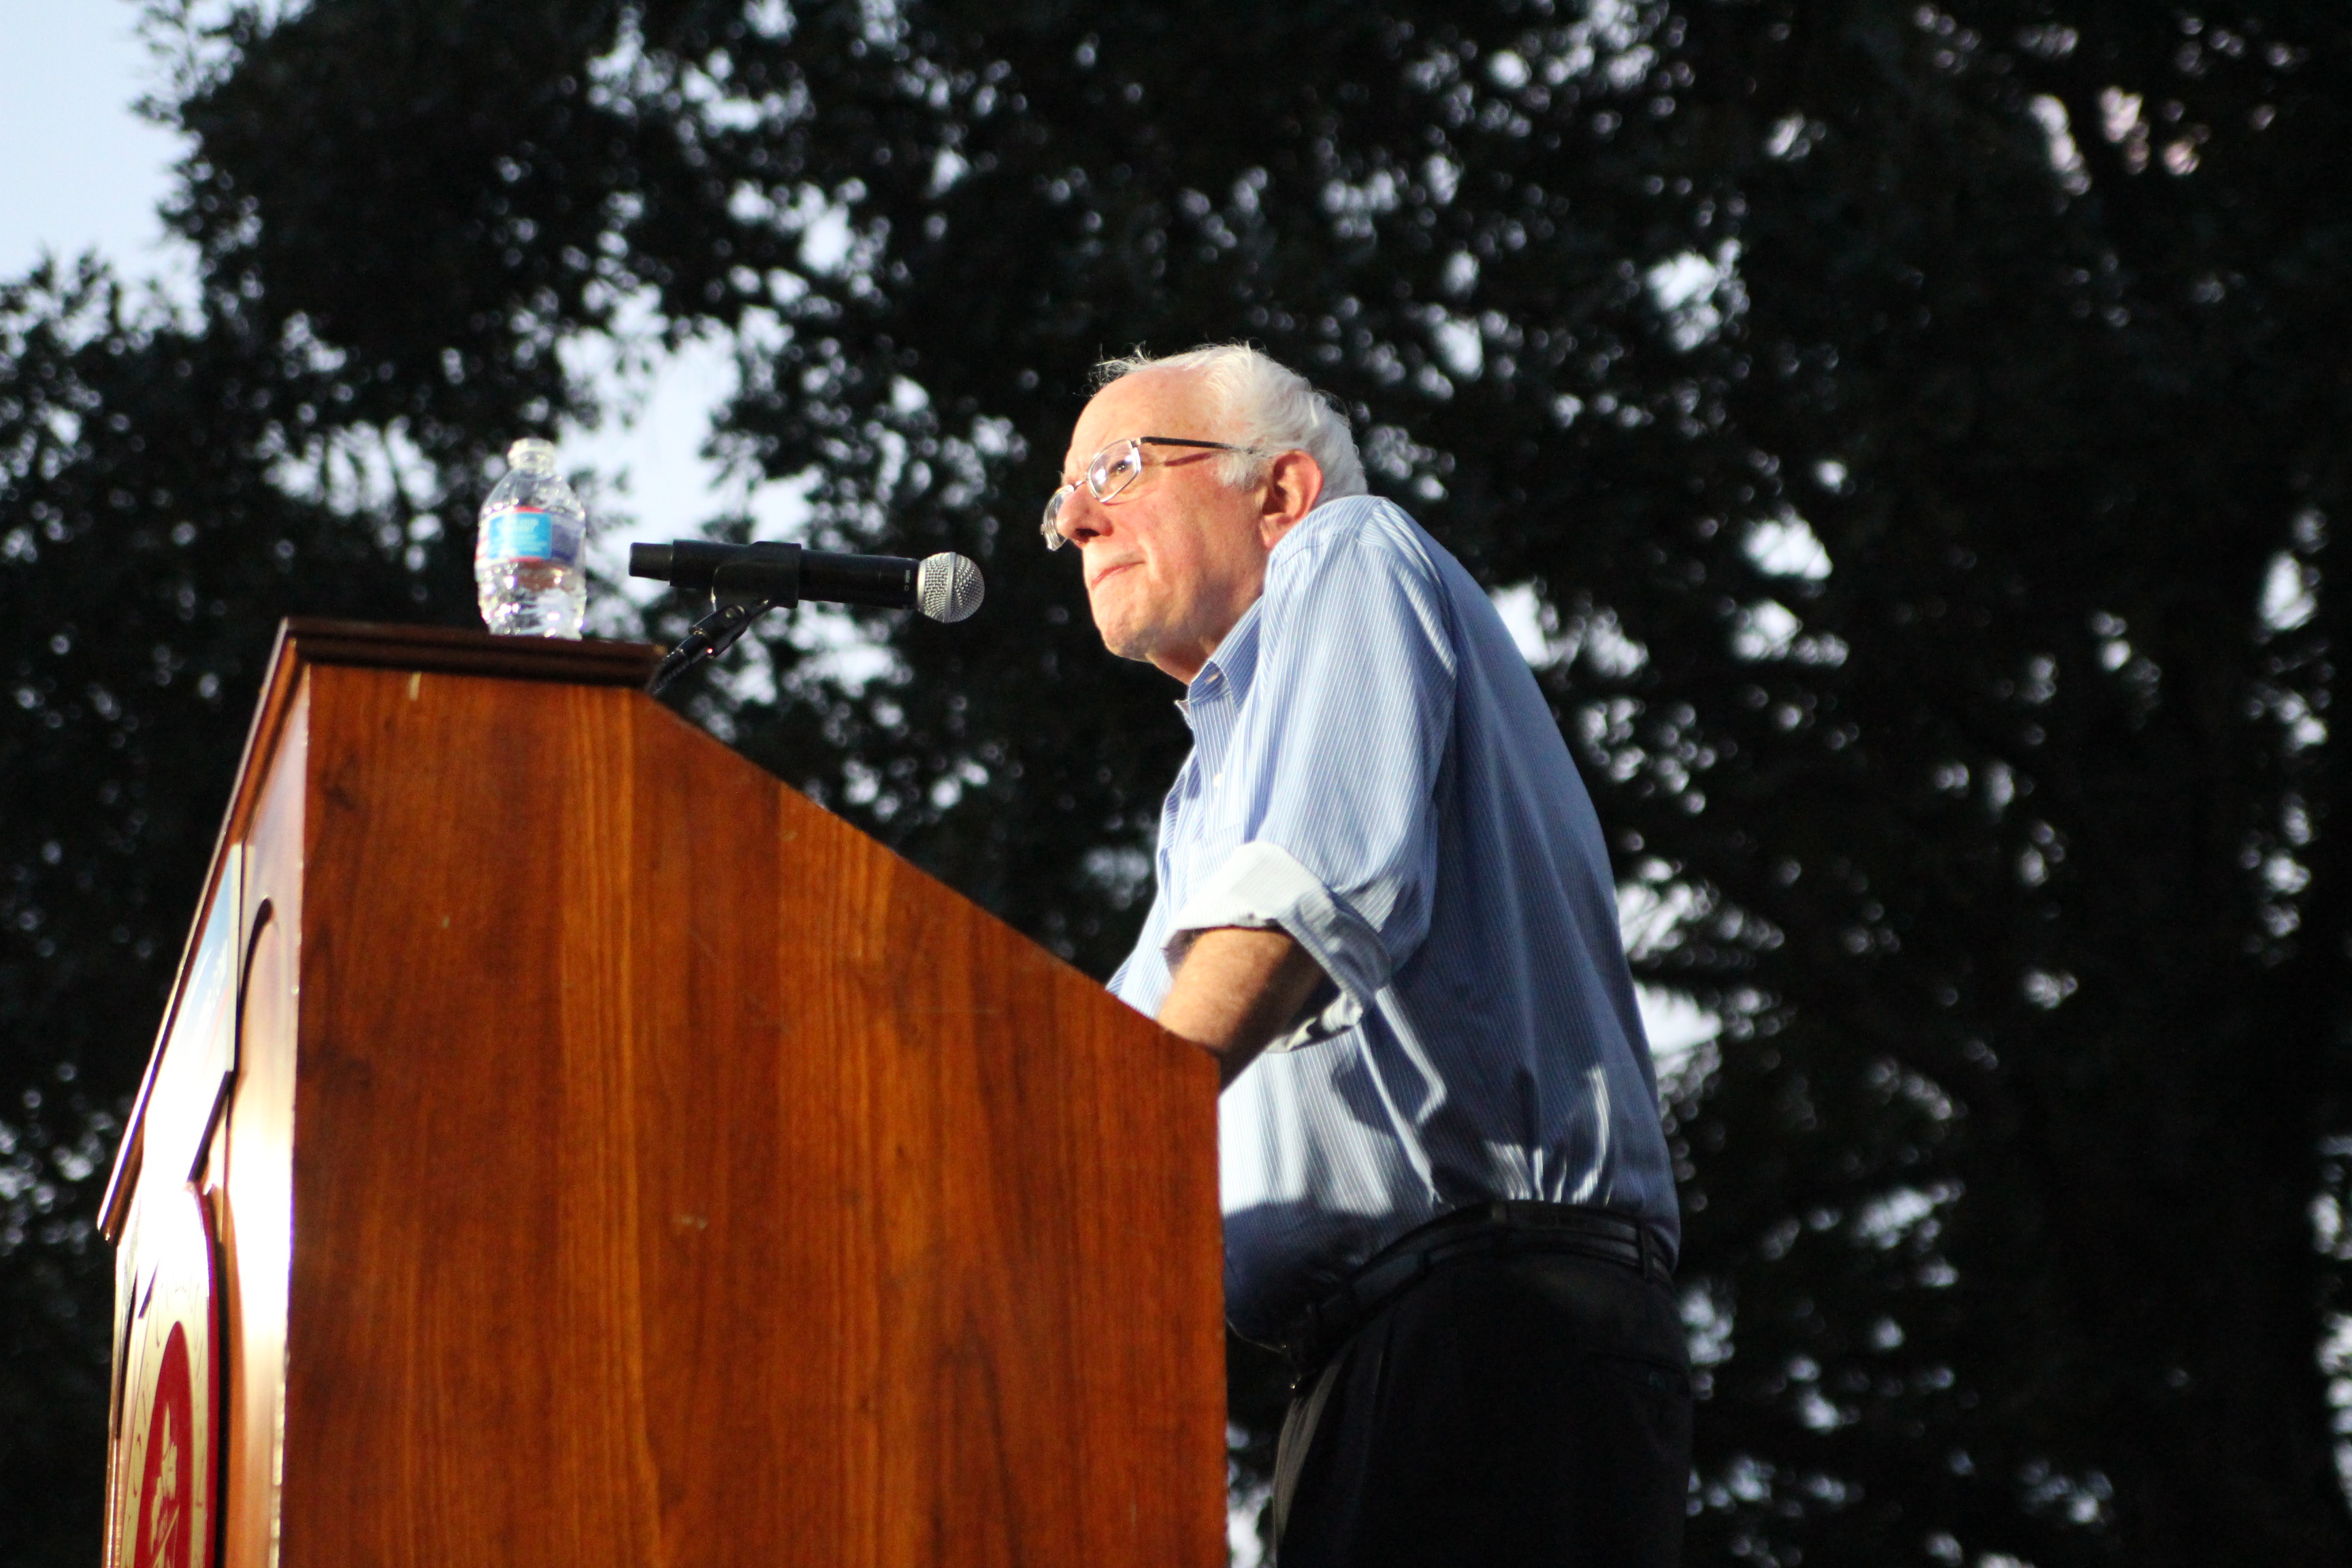 Senator Sanders speaking at Coe College in Cedar Rapids, Iowa on September 4th.